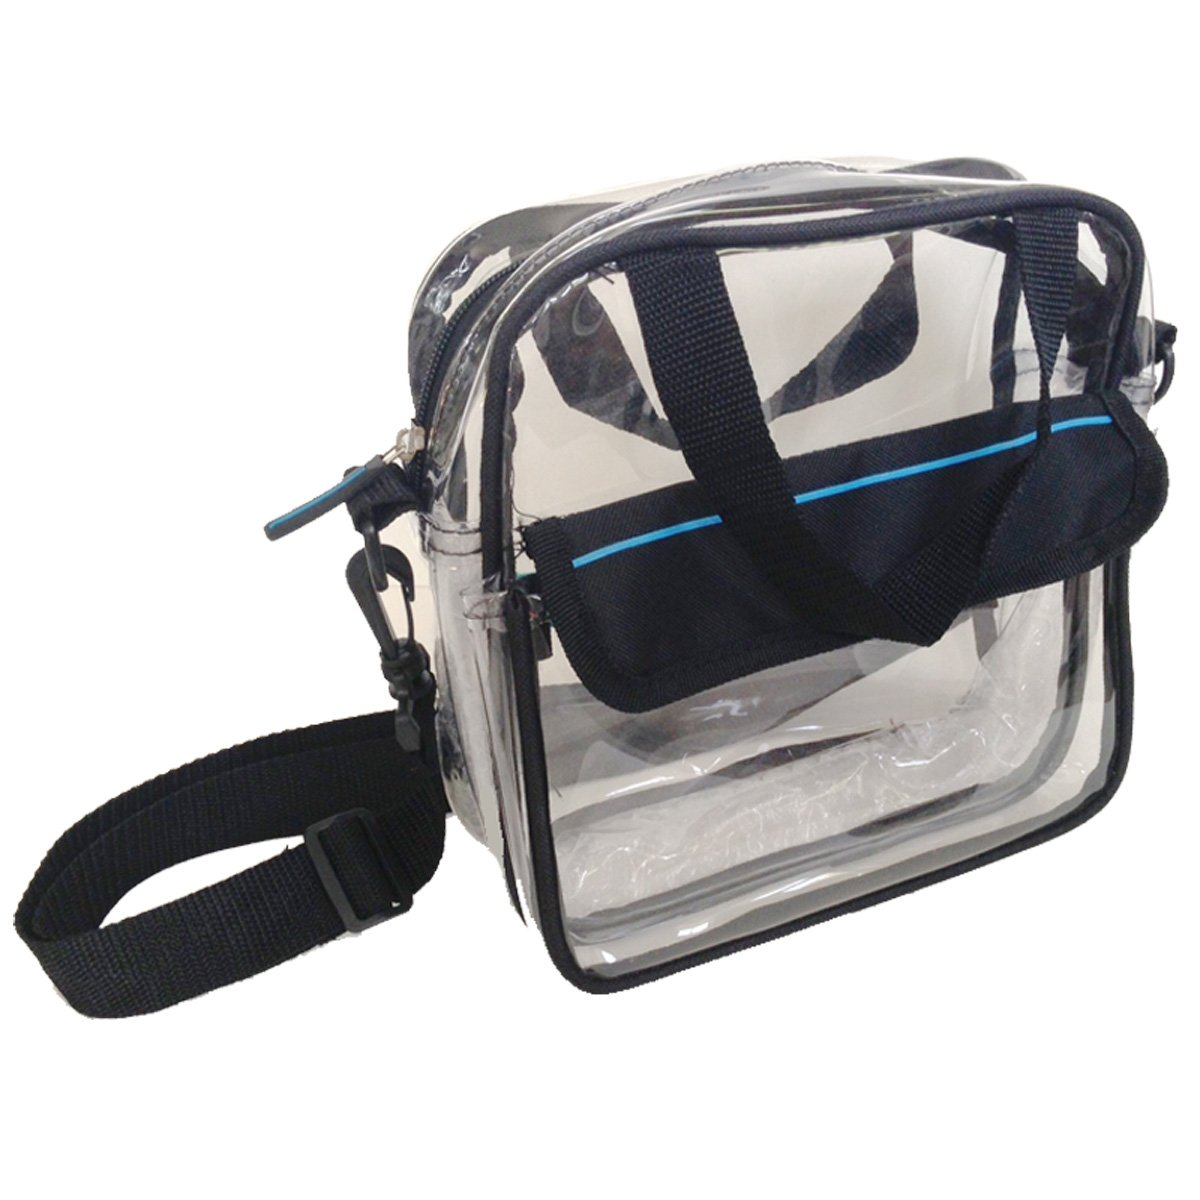 Clear Cross Body Shoulder Square Messenger Bag Security Compliant